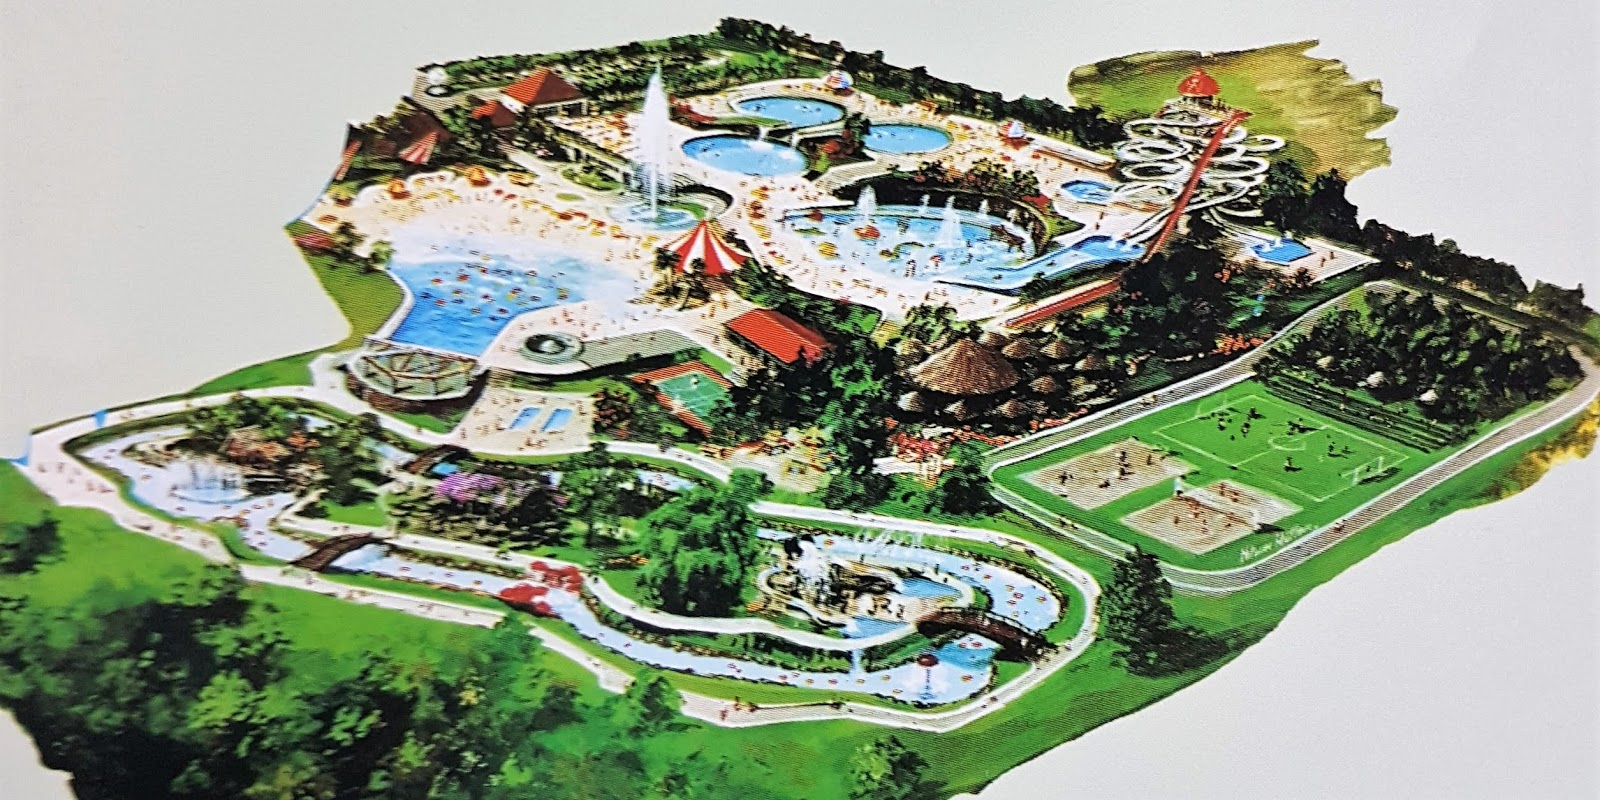 Tropical Waterpark Internacional - 1996